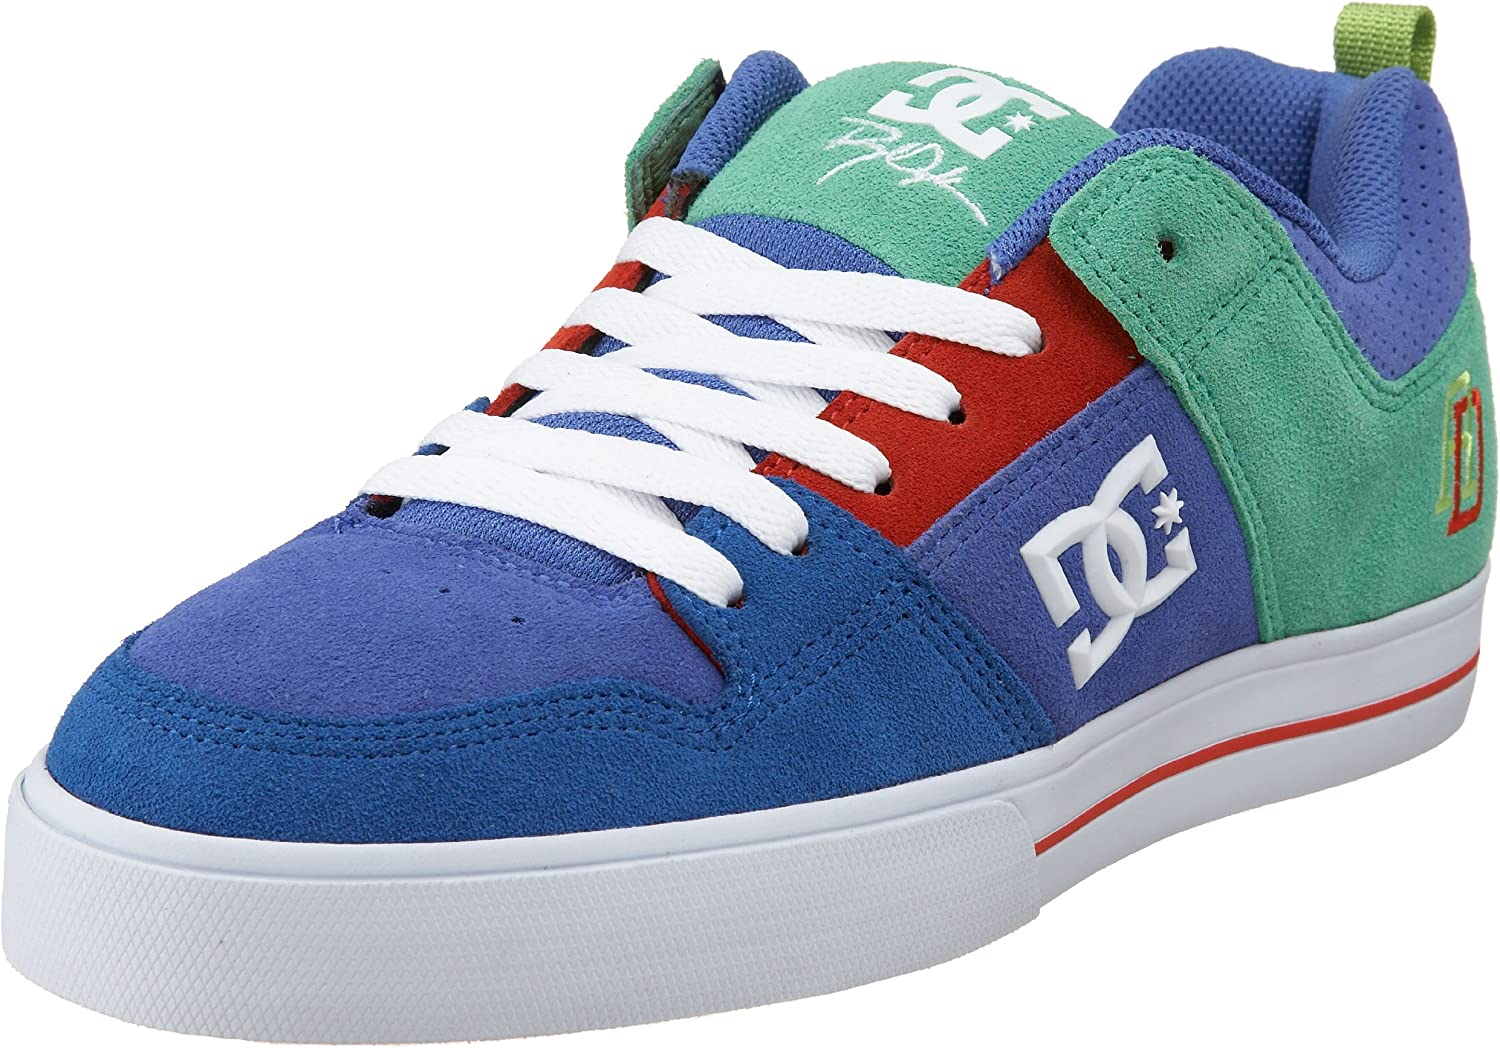 DC Shoes Men's Trainers Blue Size: 13